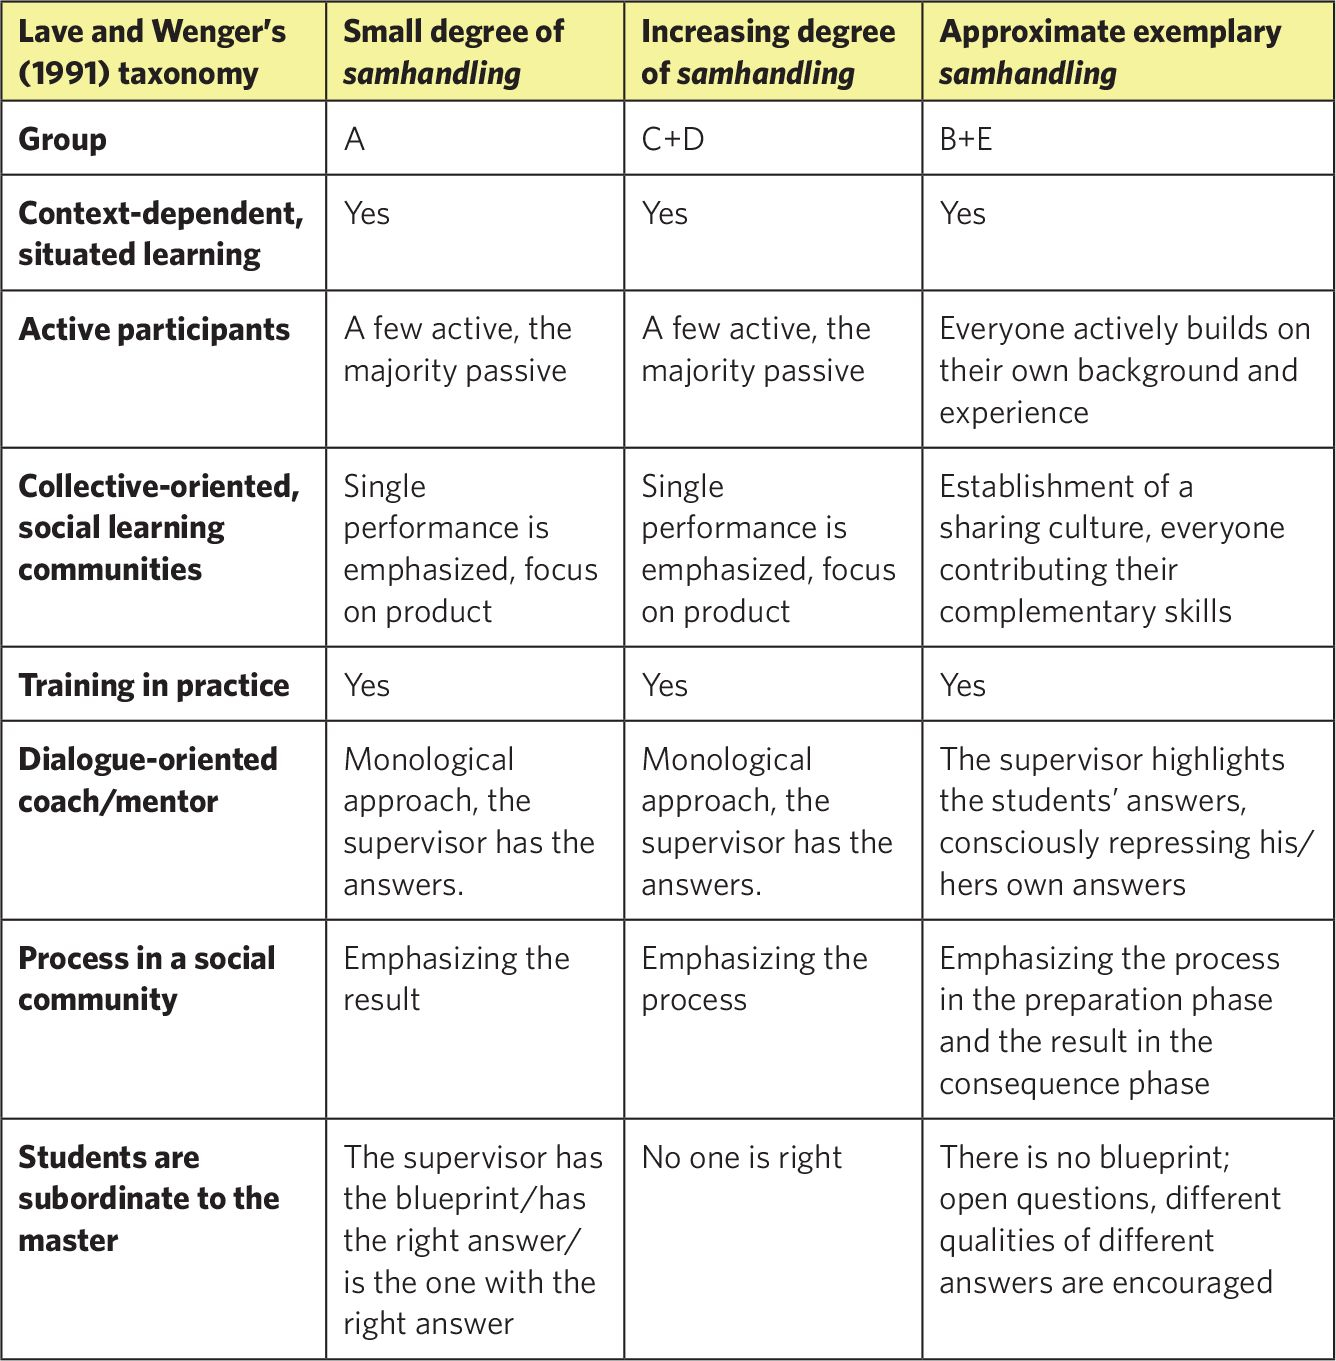 61 A Changing Landscape Worksheet Answers